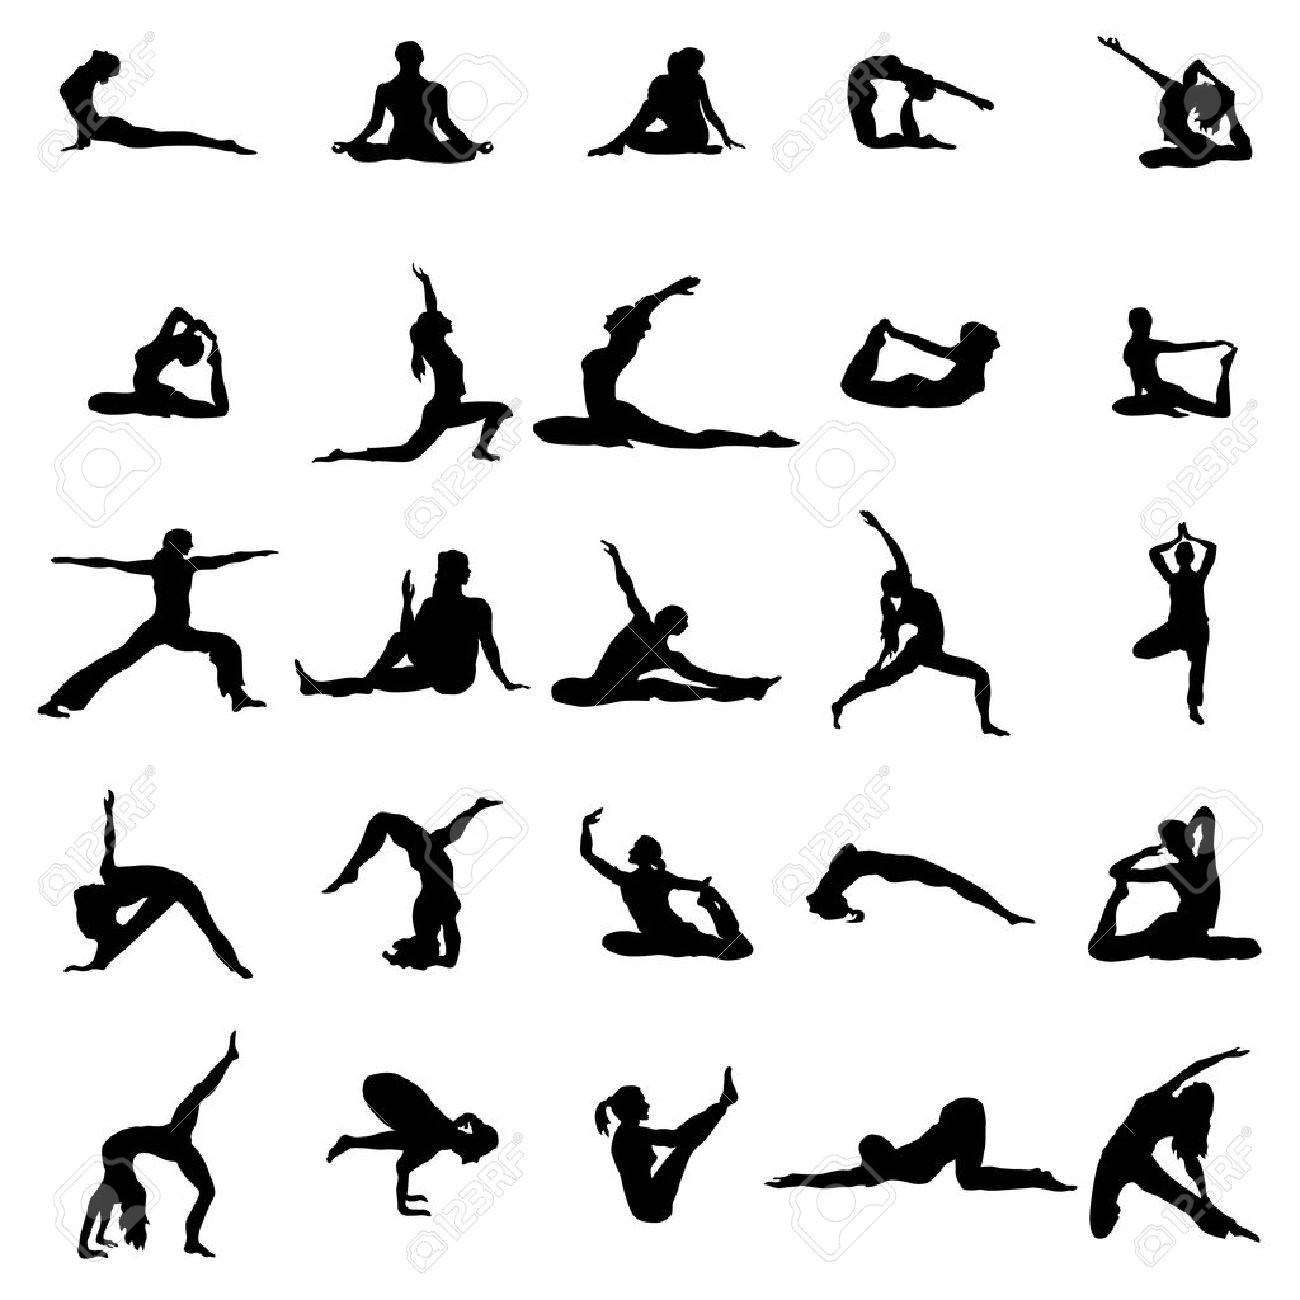 Yoga silhouette set isolated on white background Banque d'images - 51979770